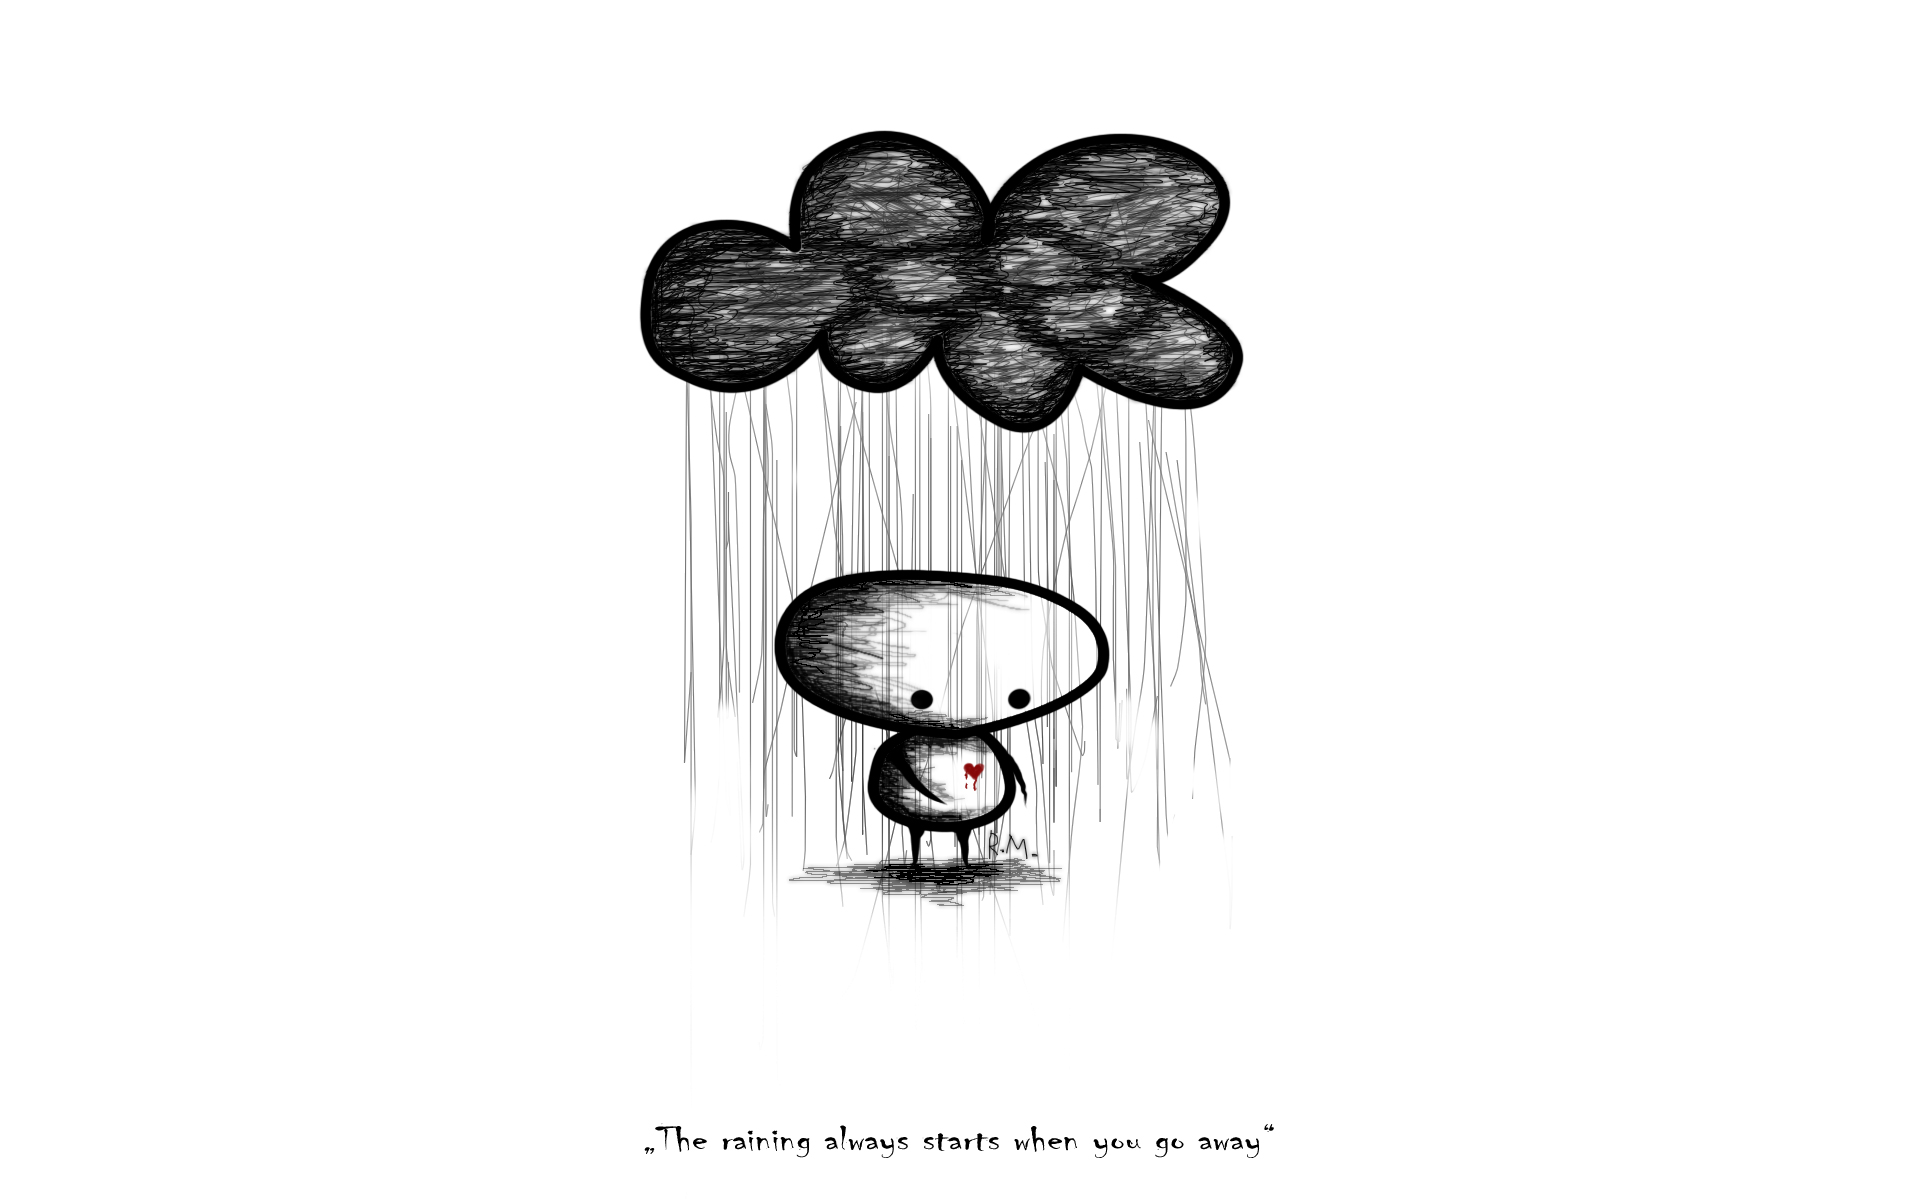 Sad Anime Quotes Wallpaper For Computers Sad Rain Background Wallpaper High Definition High